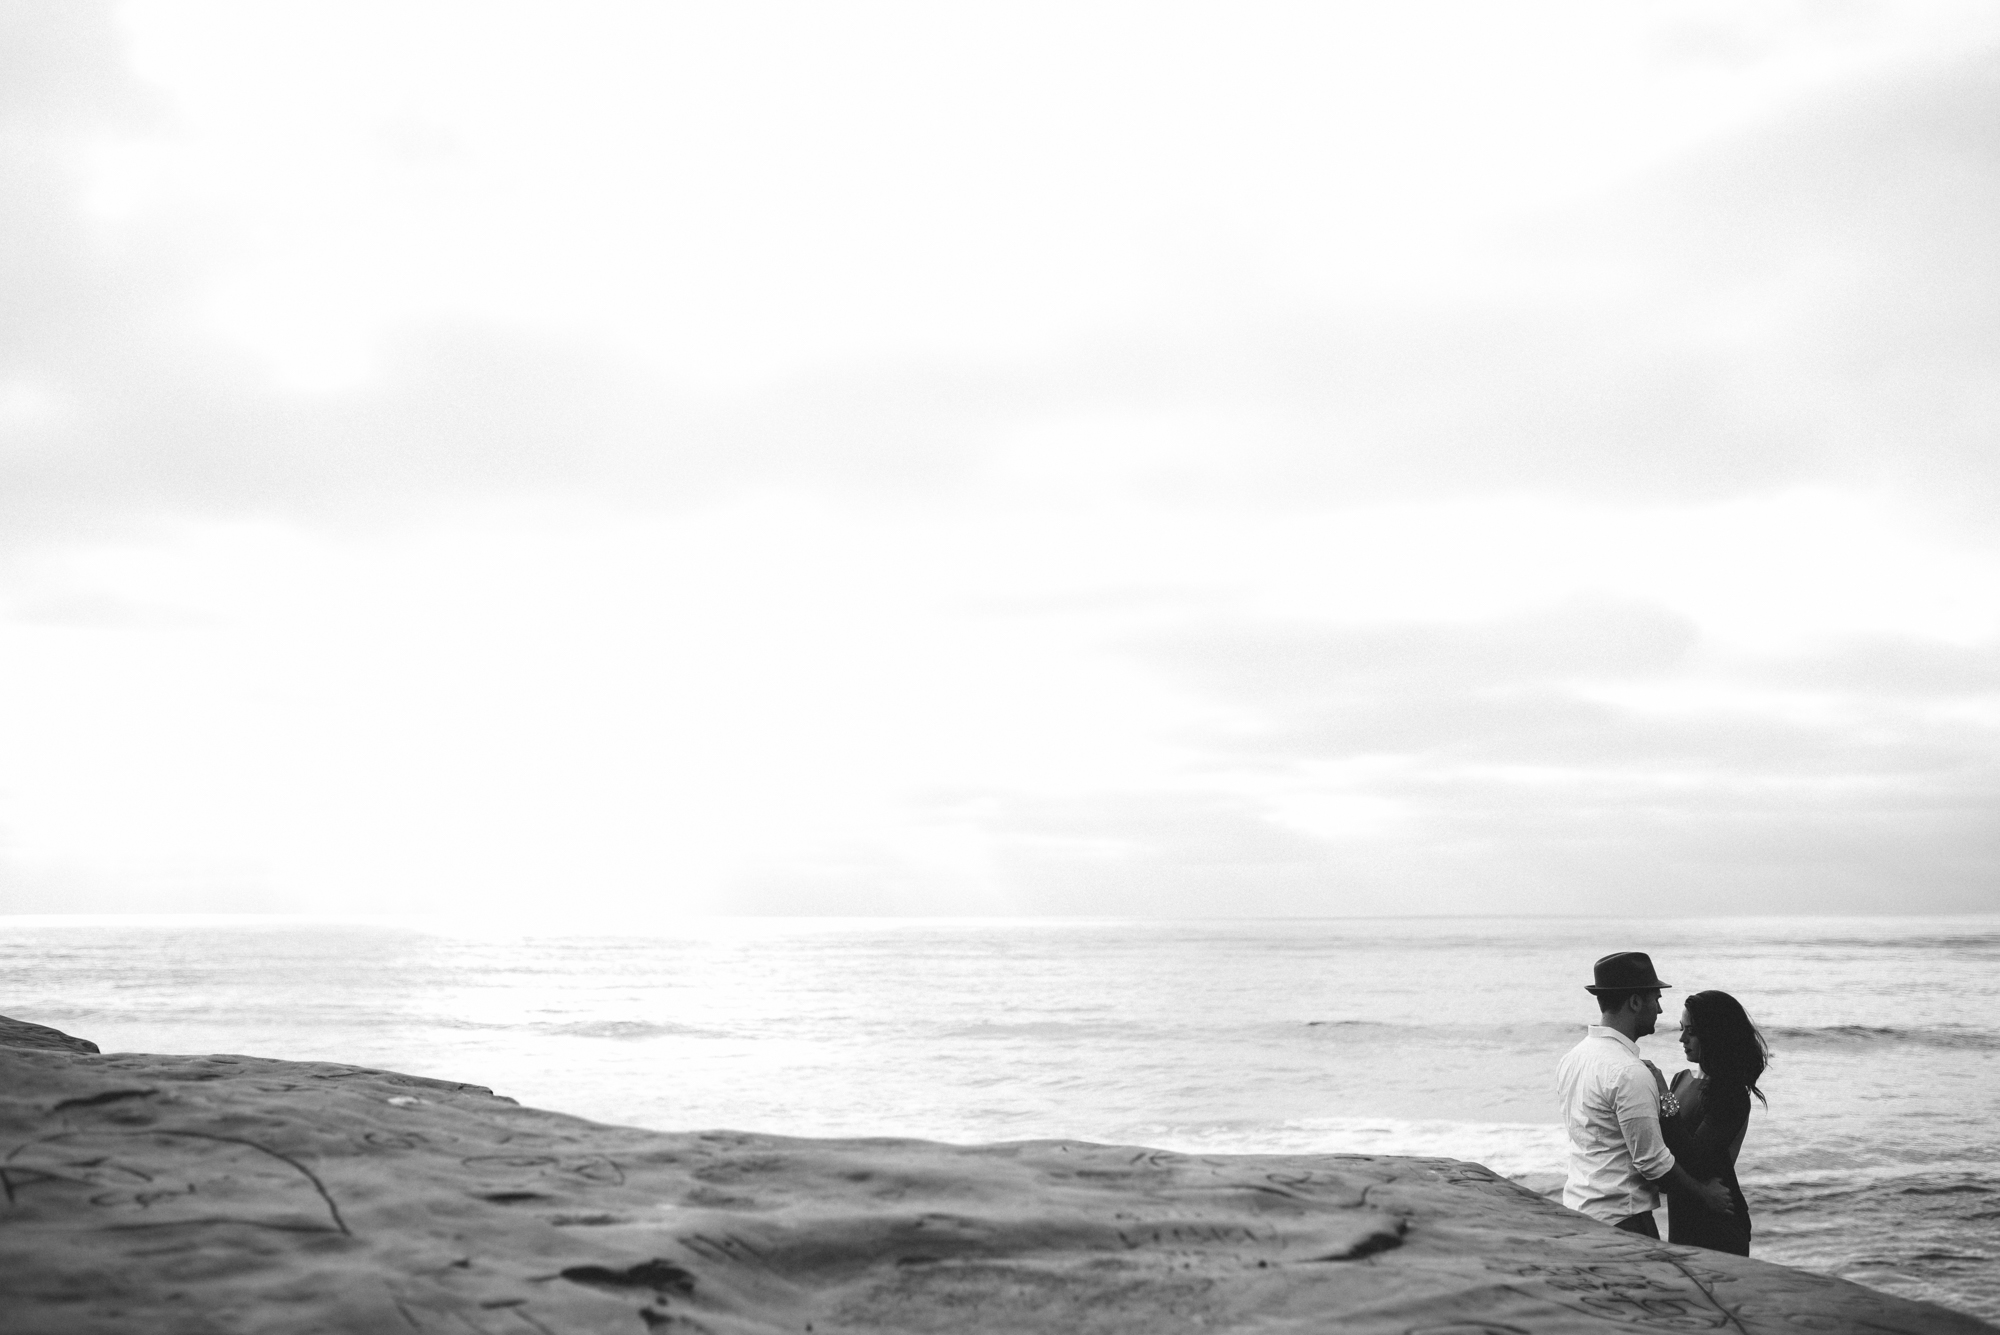 Isaiah & Taylor Photography - Los Angeles - Destination Wedding Photographers - San Diego Sunset Cliffs Beach Adventure Engagement-8.jpg